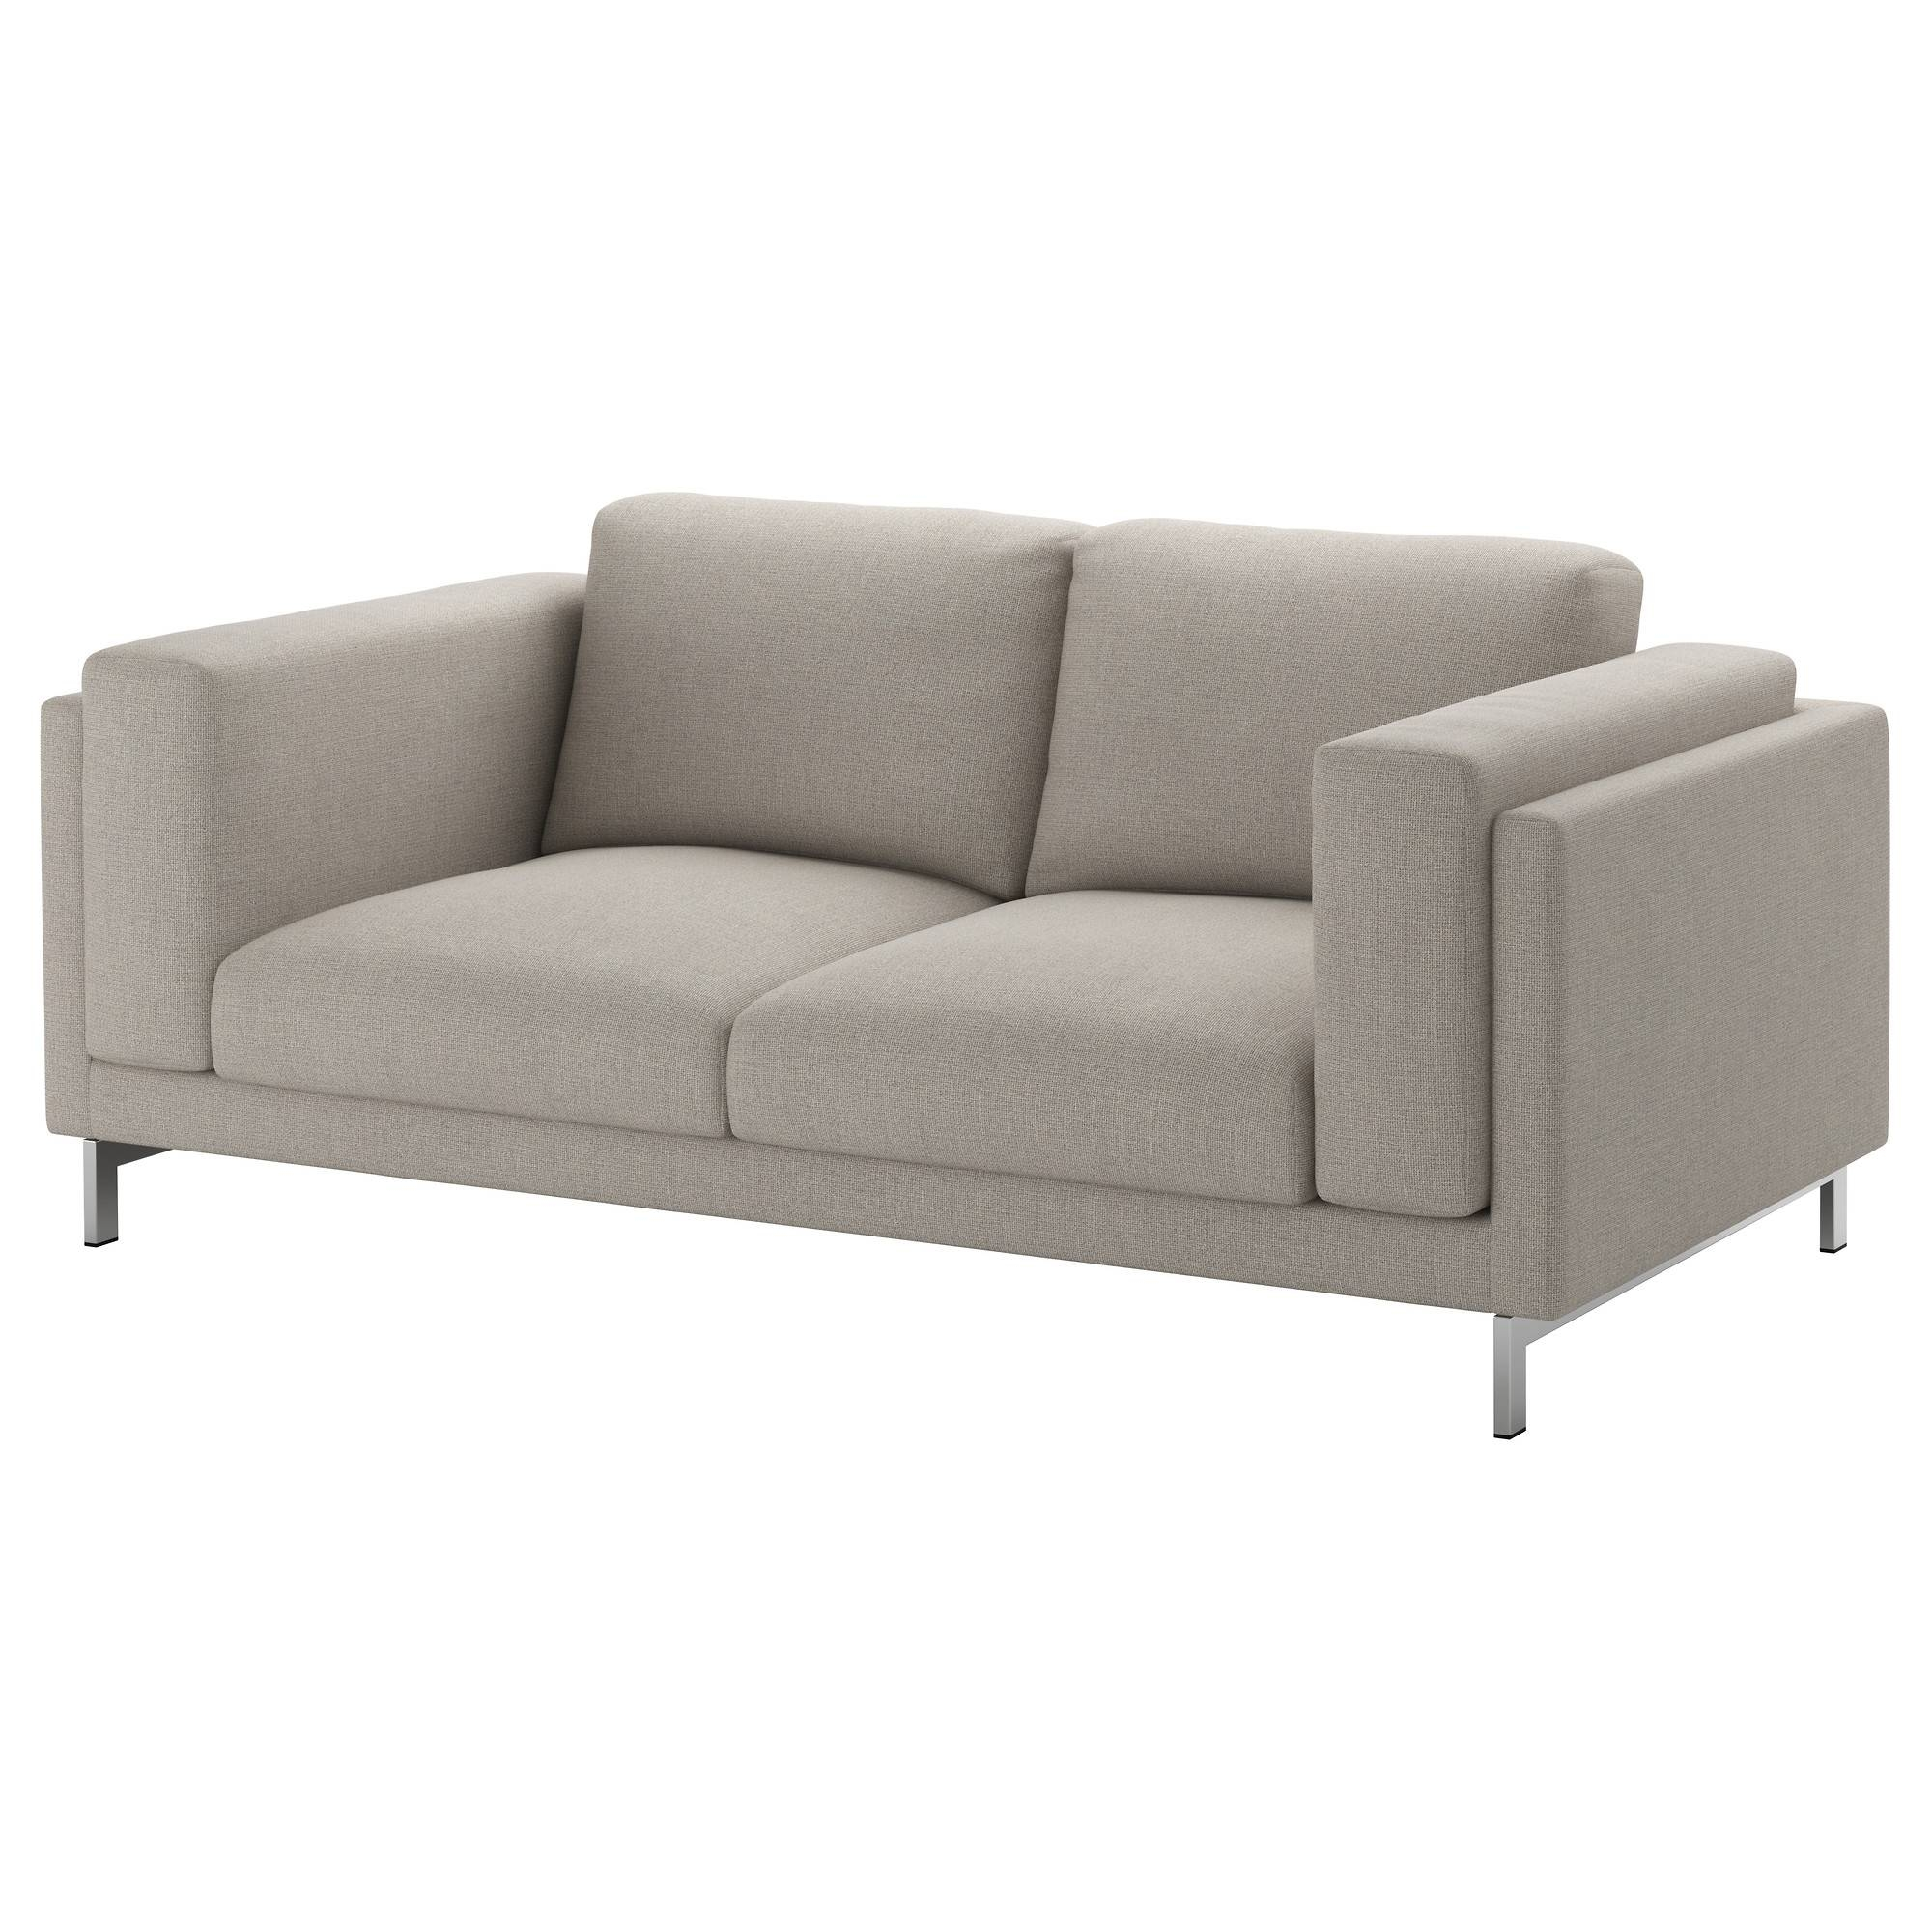 Nockeby Two-Seat Sofa Tenö Light Grey/chrome-Plated - Ikea regarding Ikea Two Seater Sofas (Image 17 of 30)